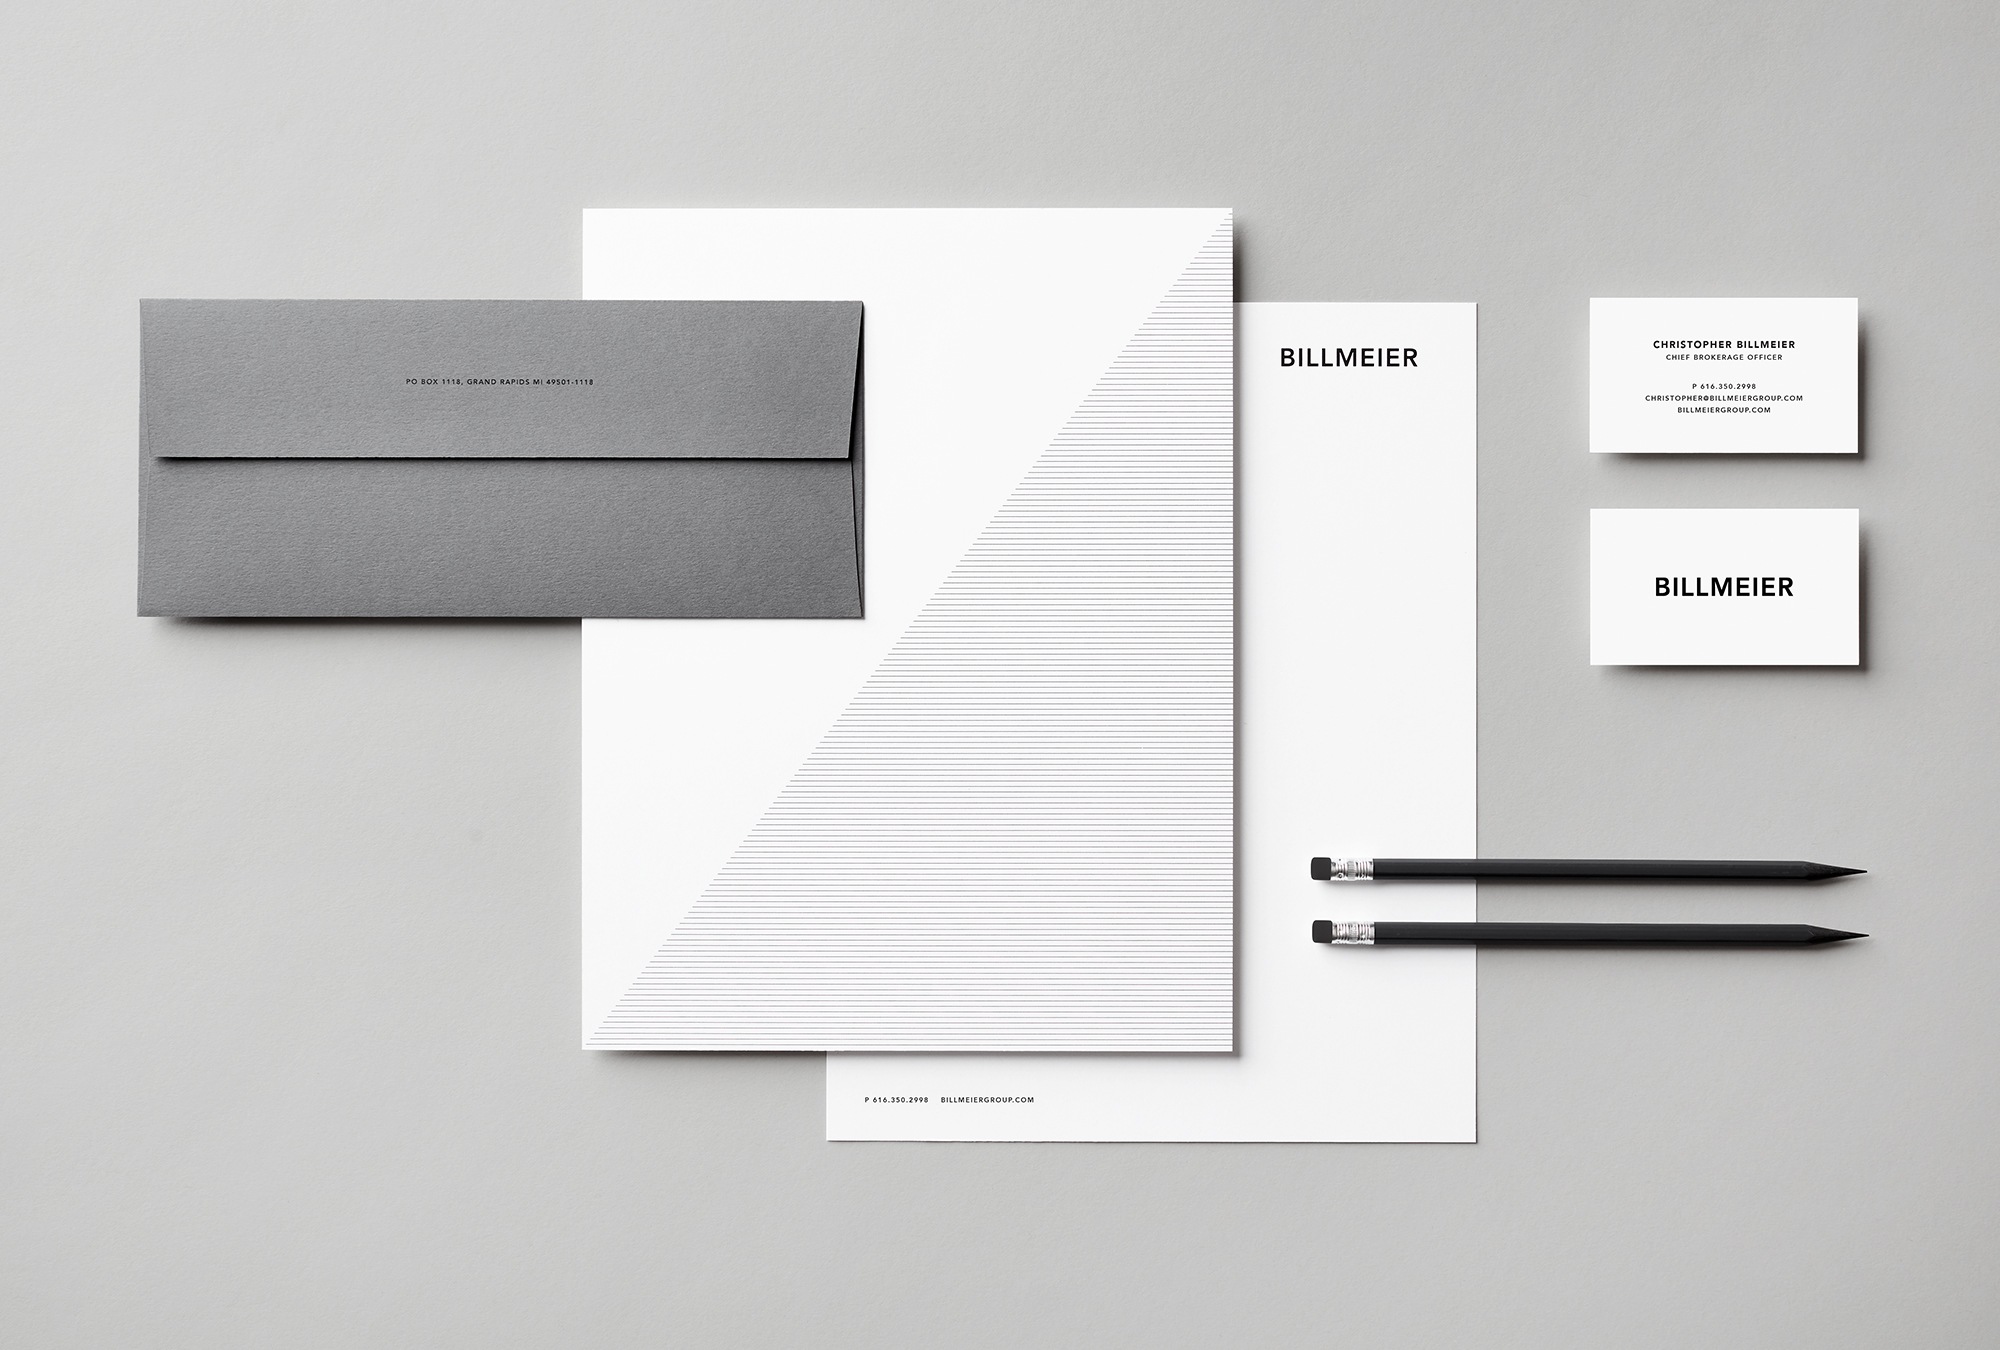 Billmeier Letterhead and Envelope